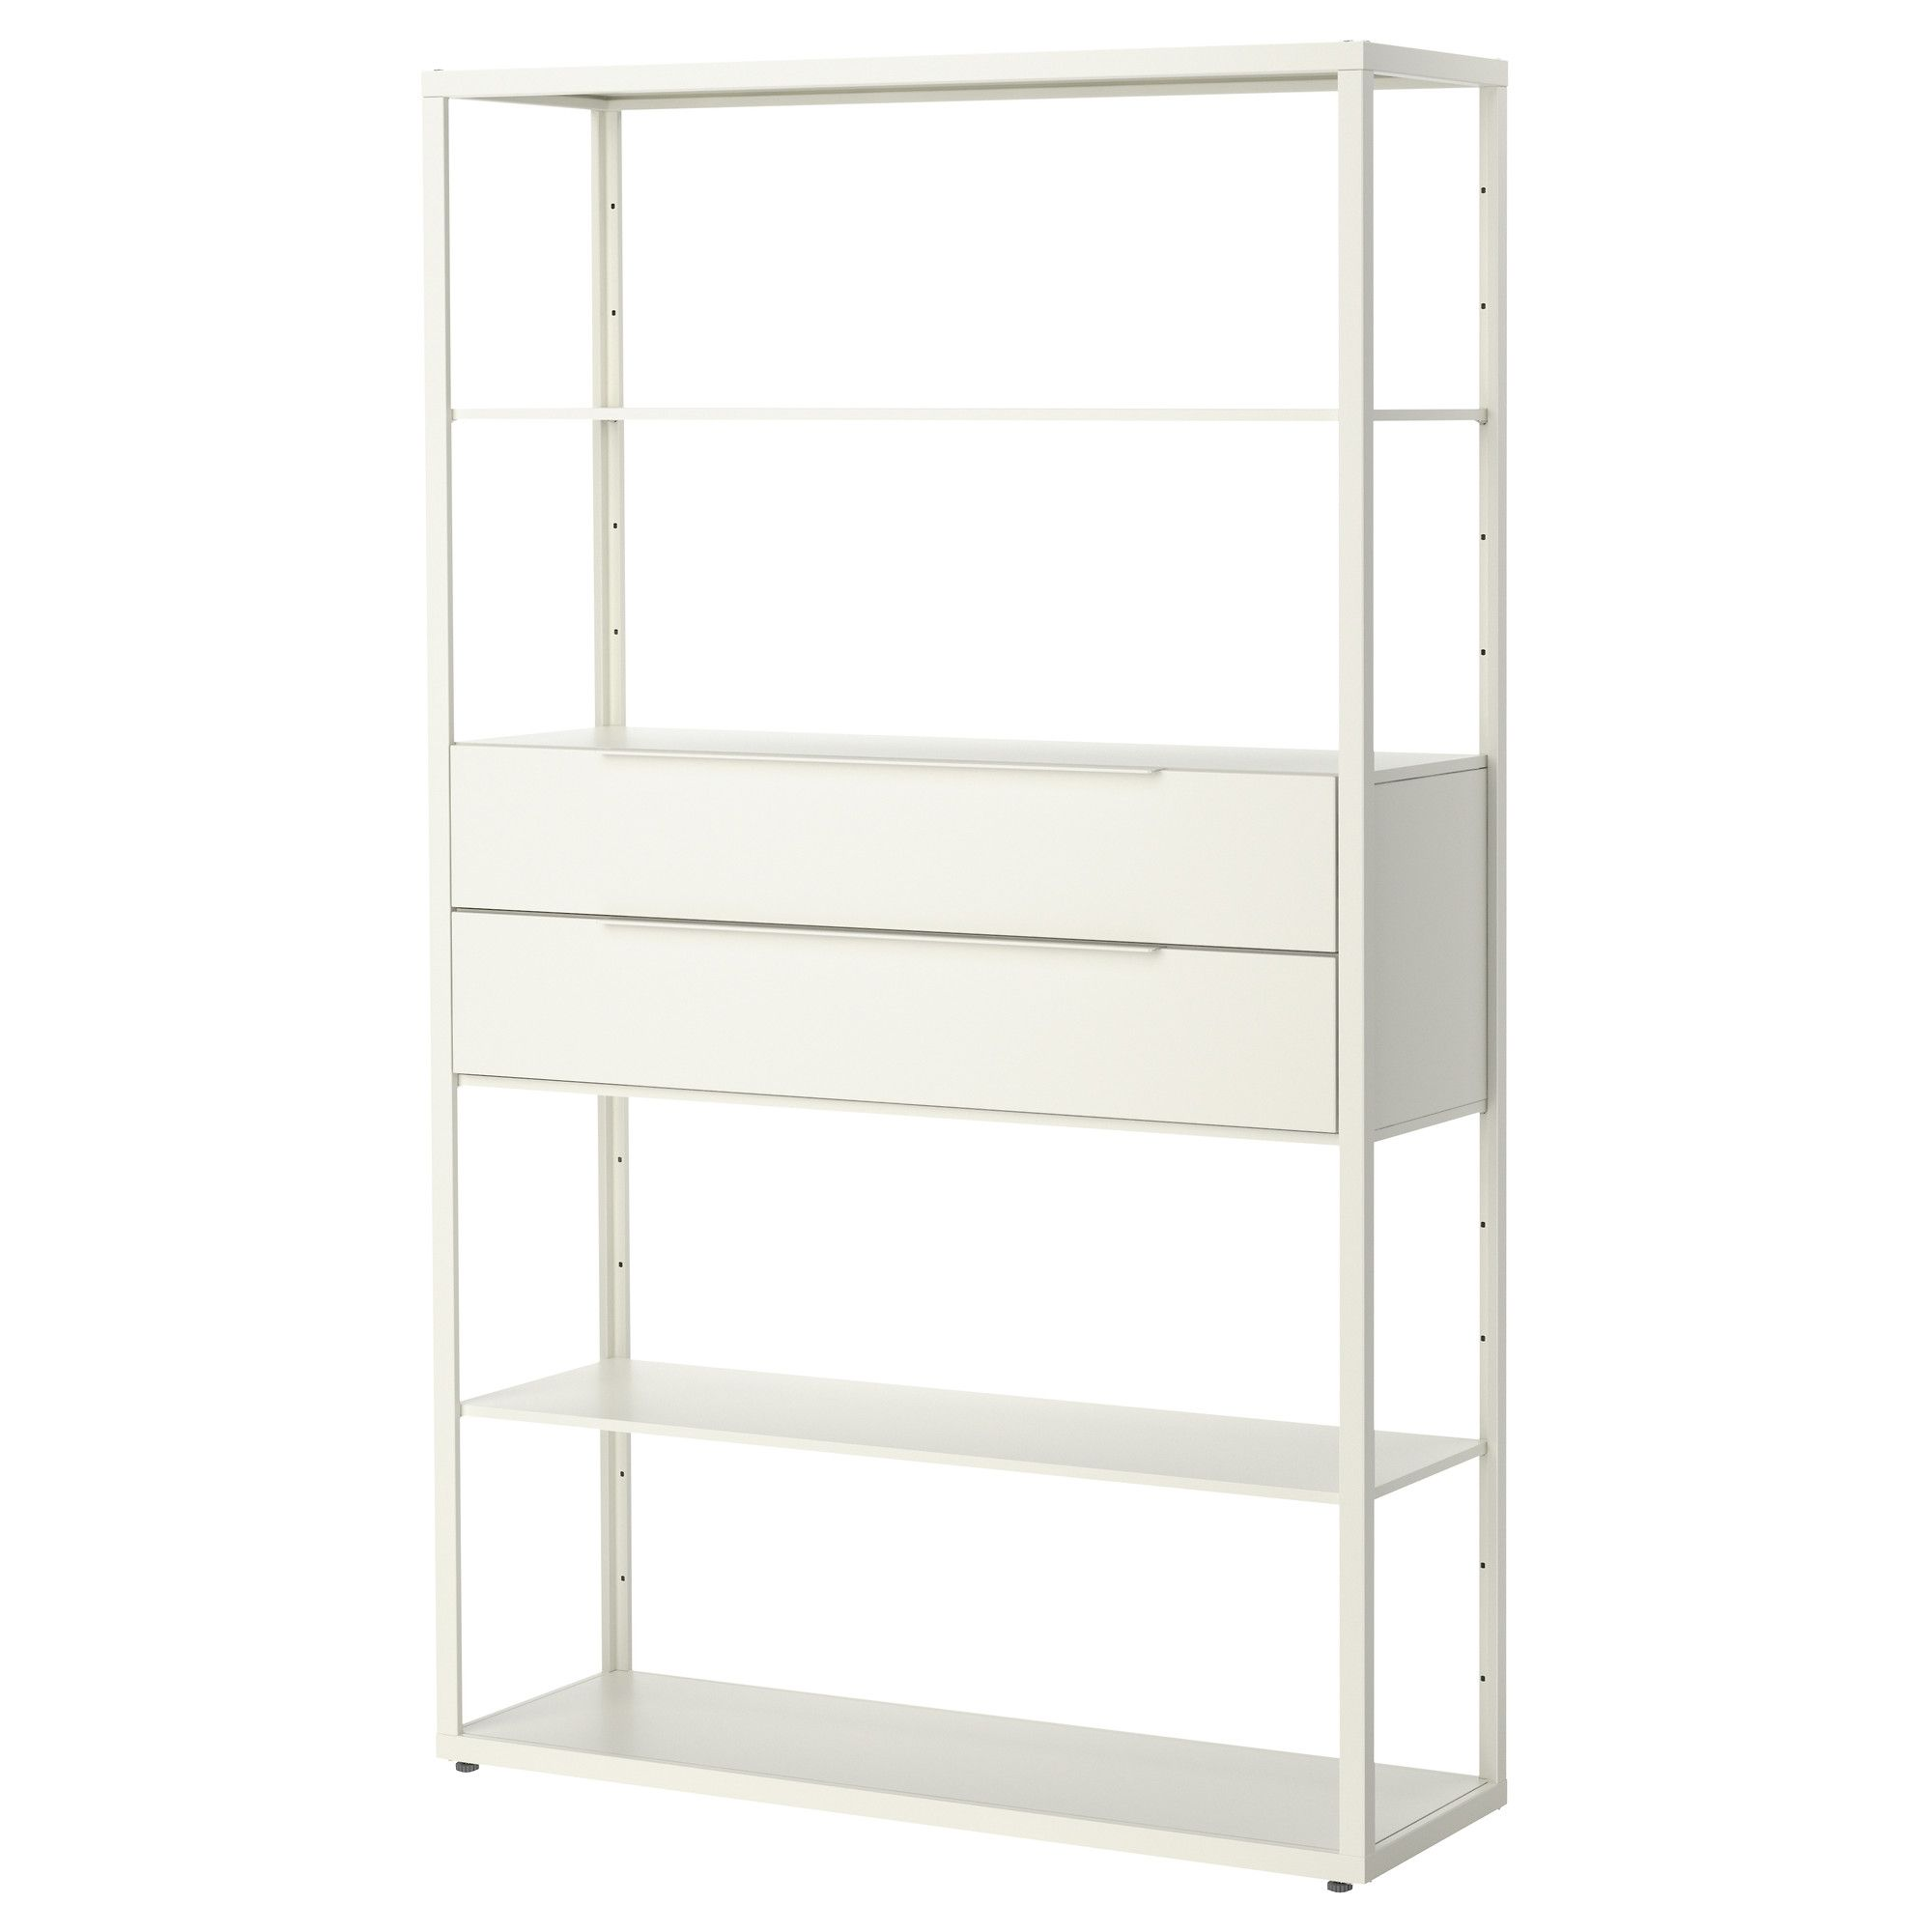 Ikea bookcase with glass doors  FJÄLKINGE Shelving unit with drawers white  Drawers